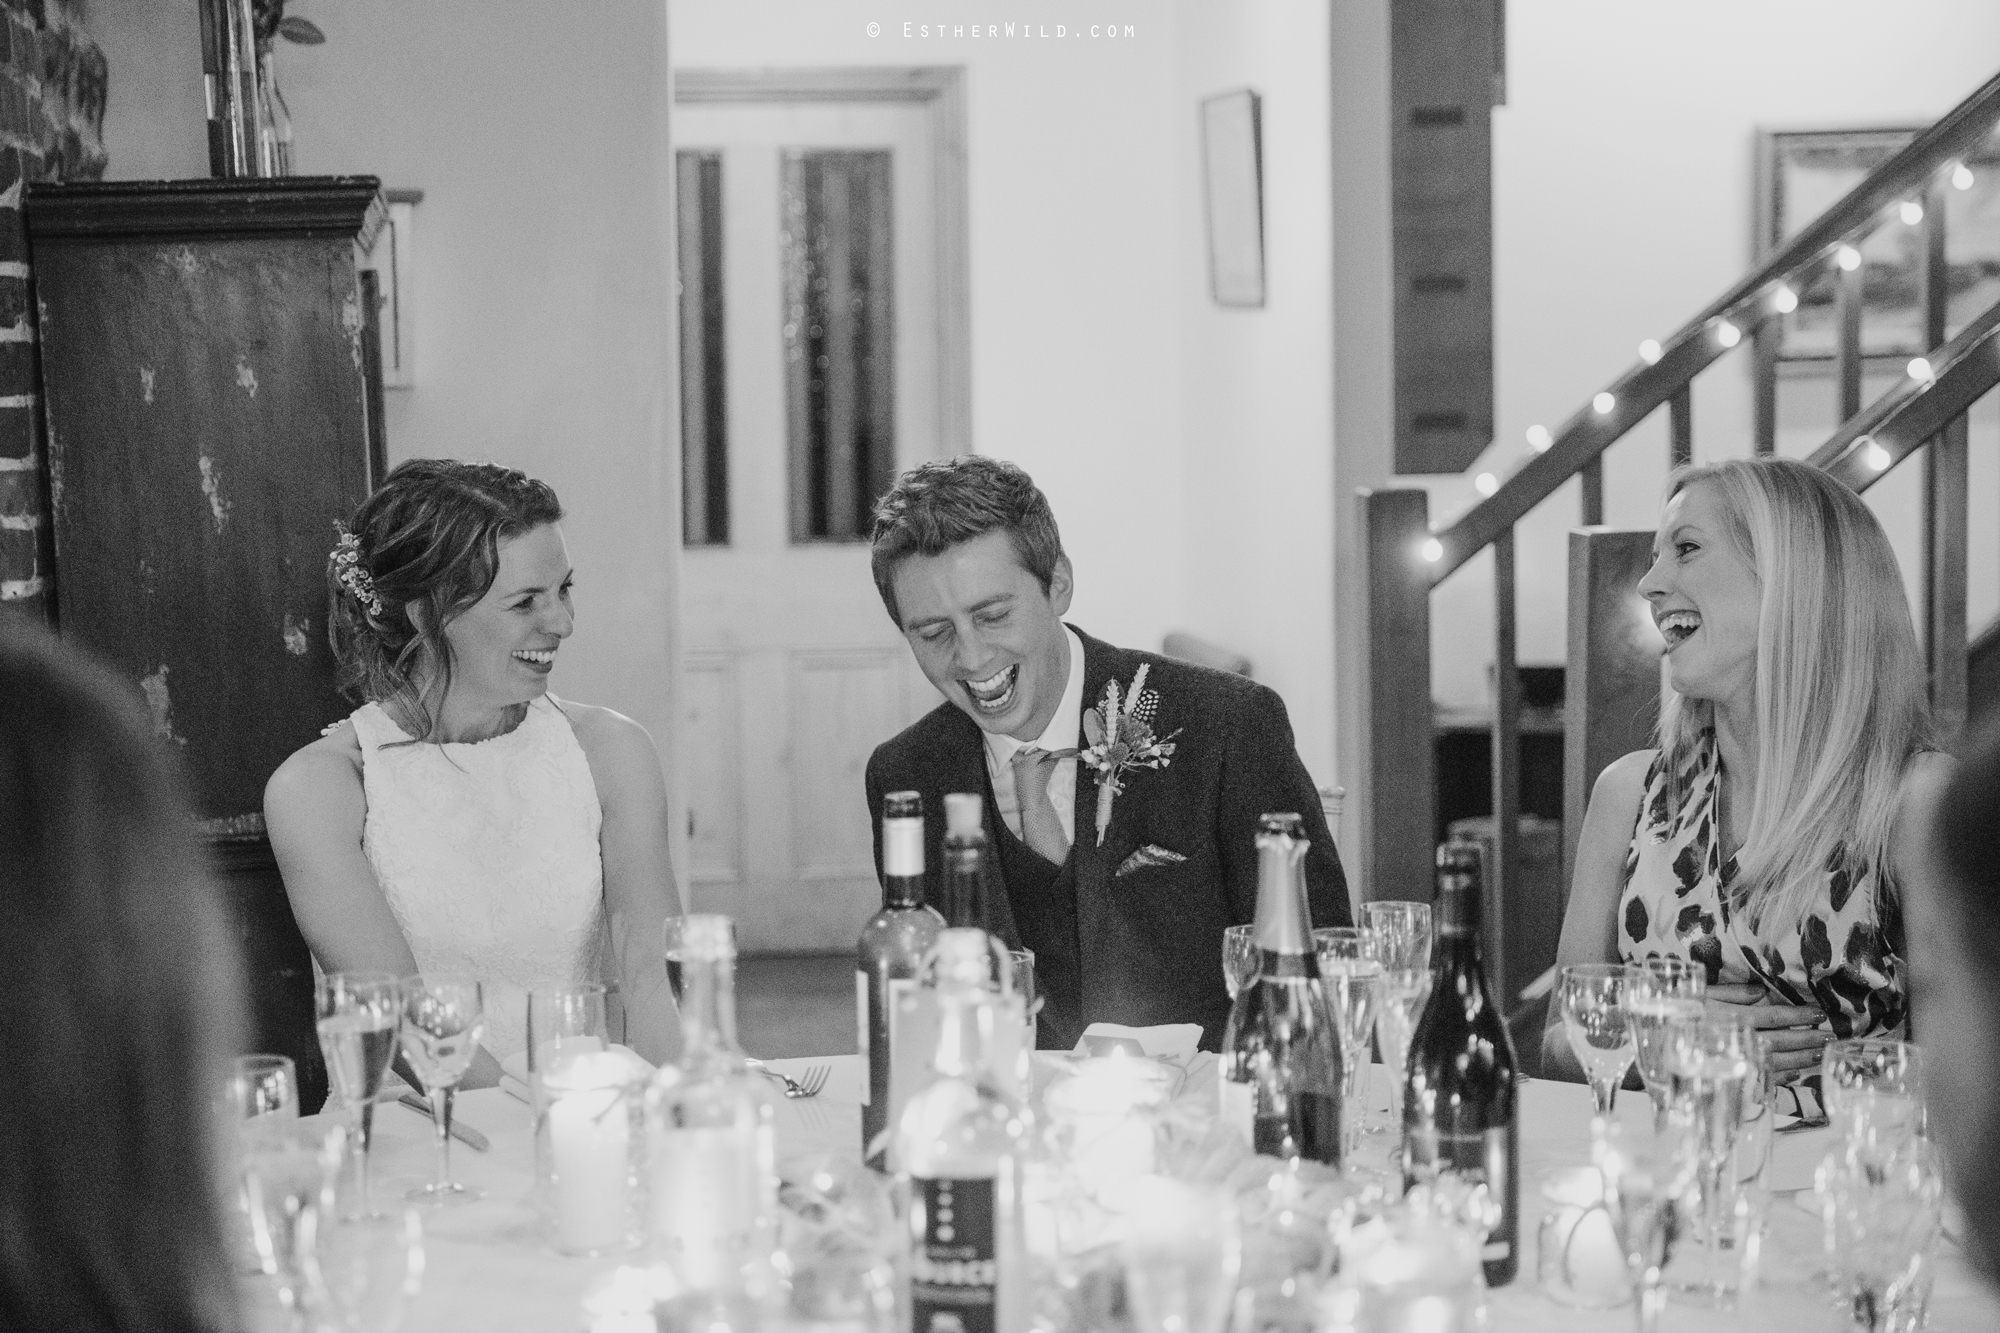 Wedding_Photographer_Chaucer_Barn_Holt_Norfolk_Country_Rustic_Venue_Copyright_Esther_Wild_IMG_1826-1.jpg